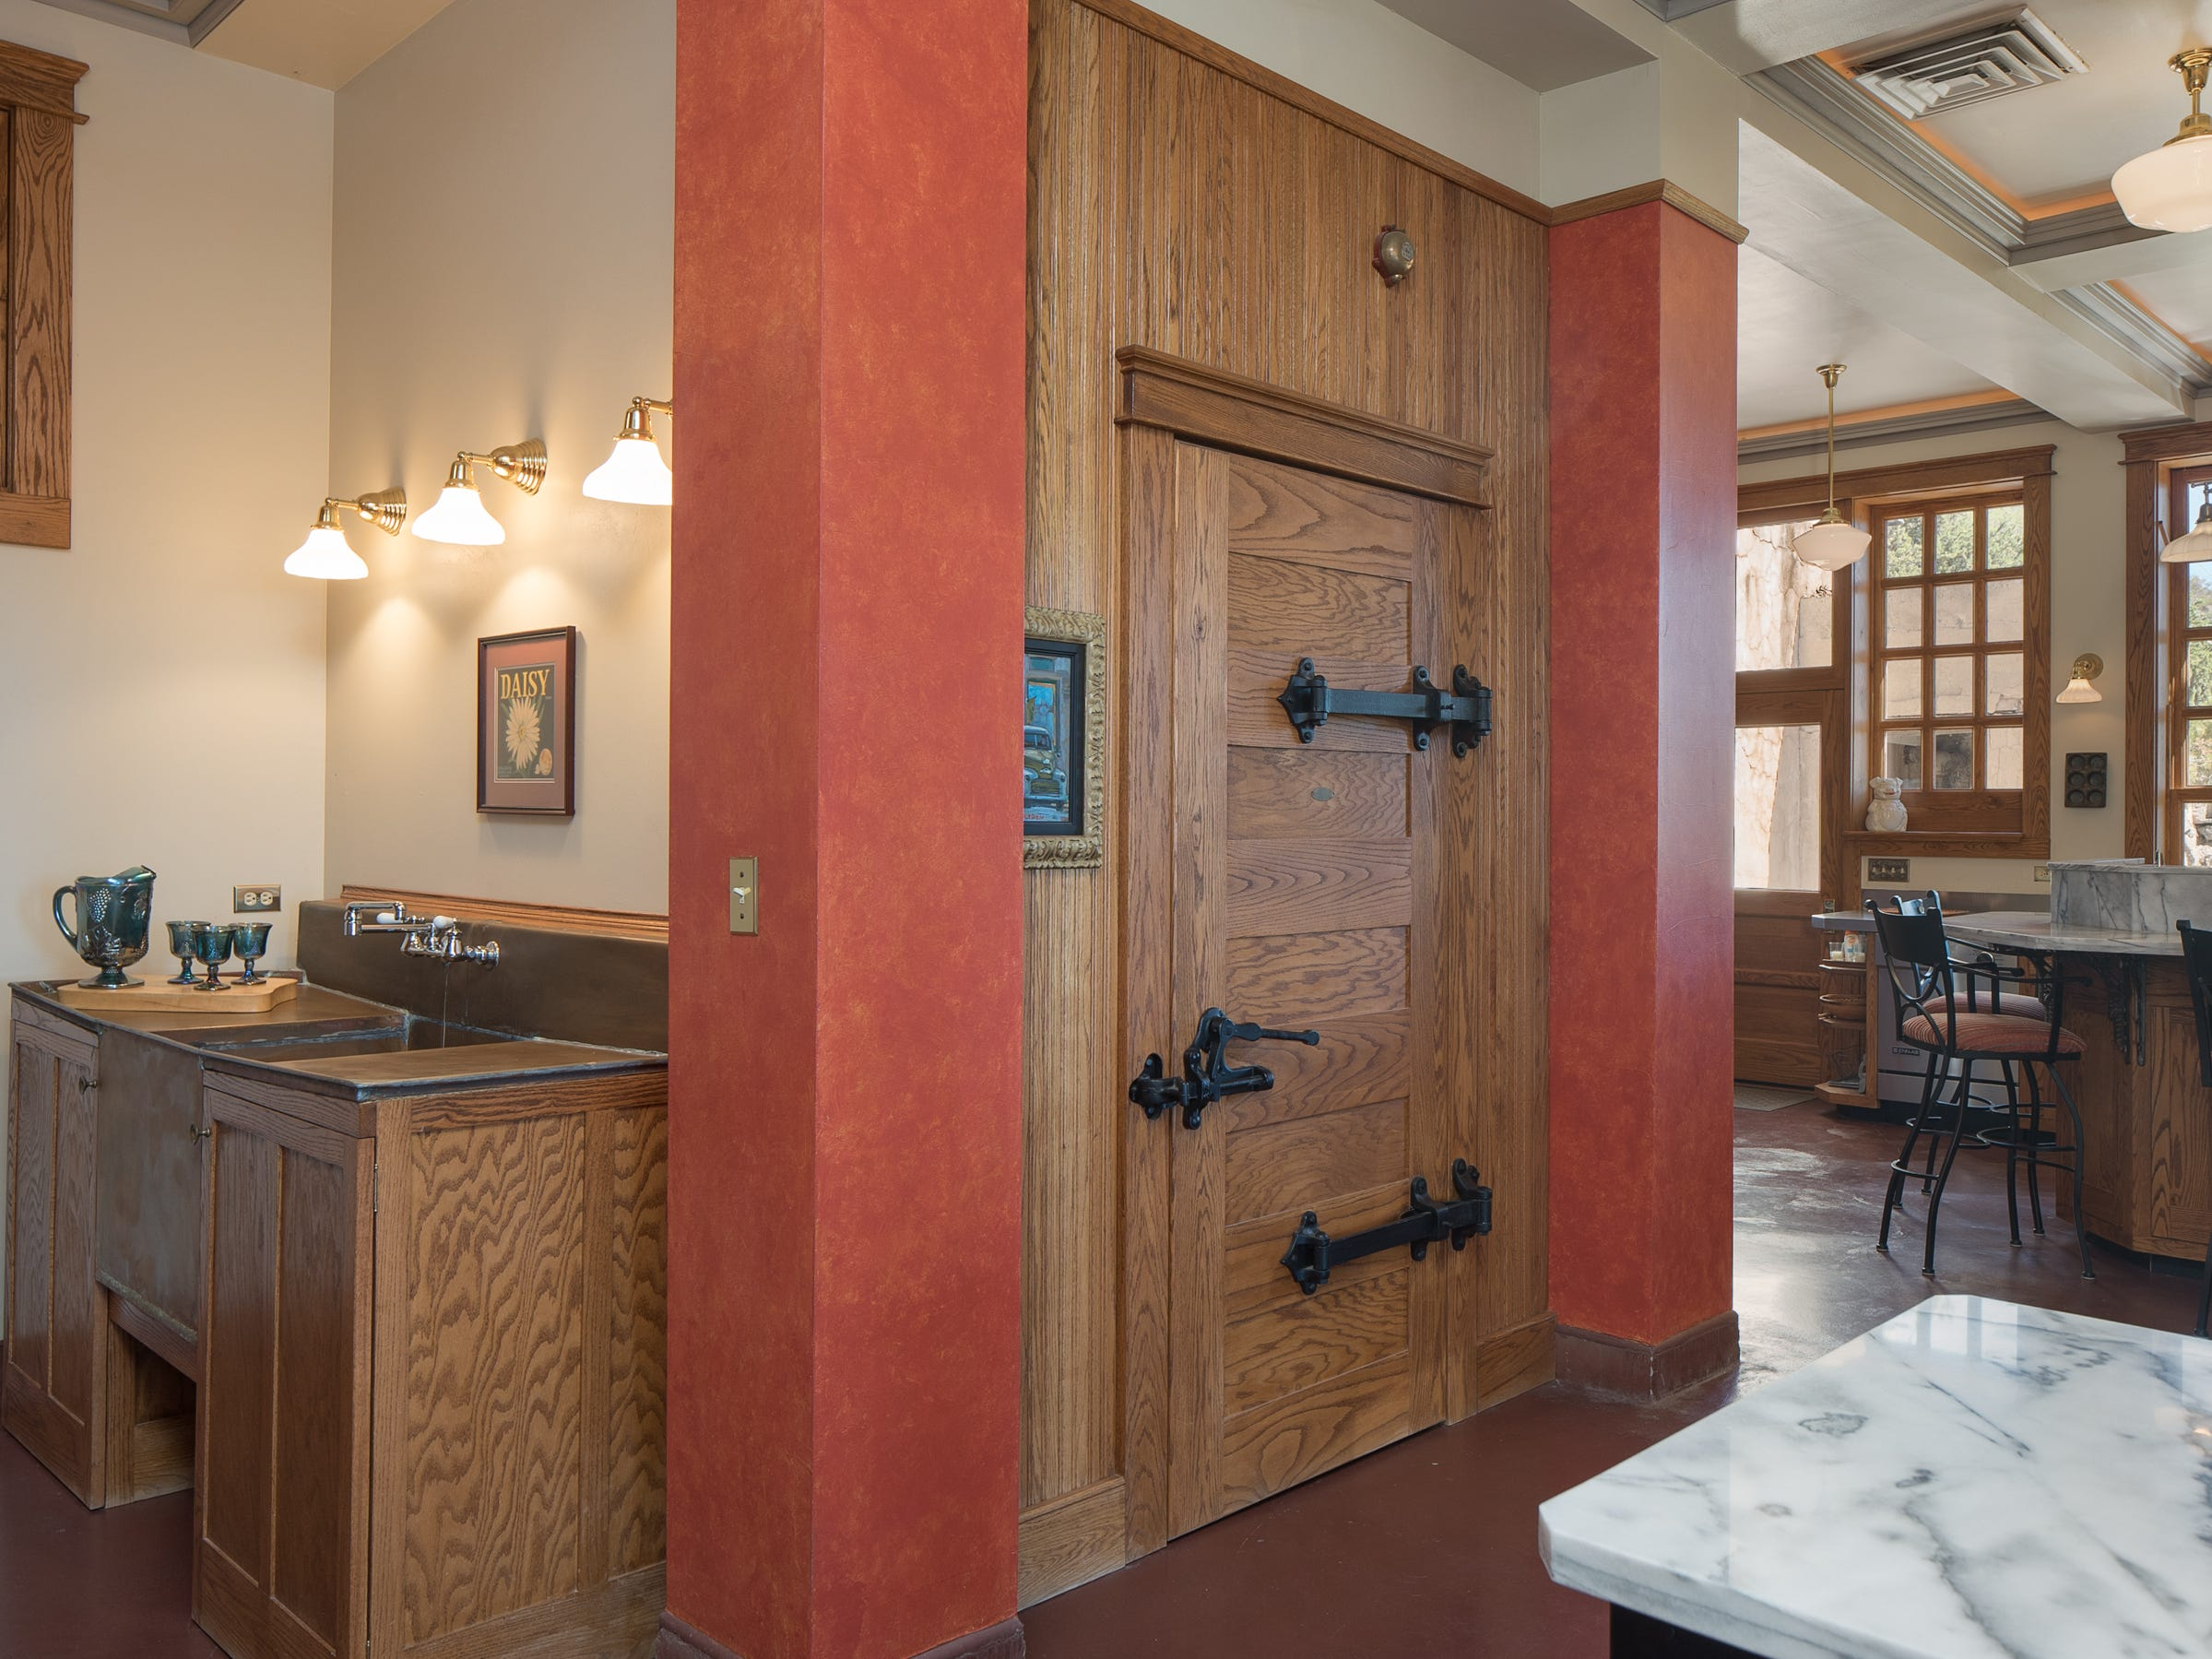 The kitchen pantry is seen in the 100-year-old former Little Daisy Hotel in Jerome, which was later turned into a single-family home and is now on the market.